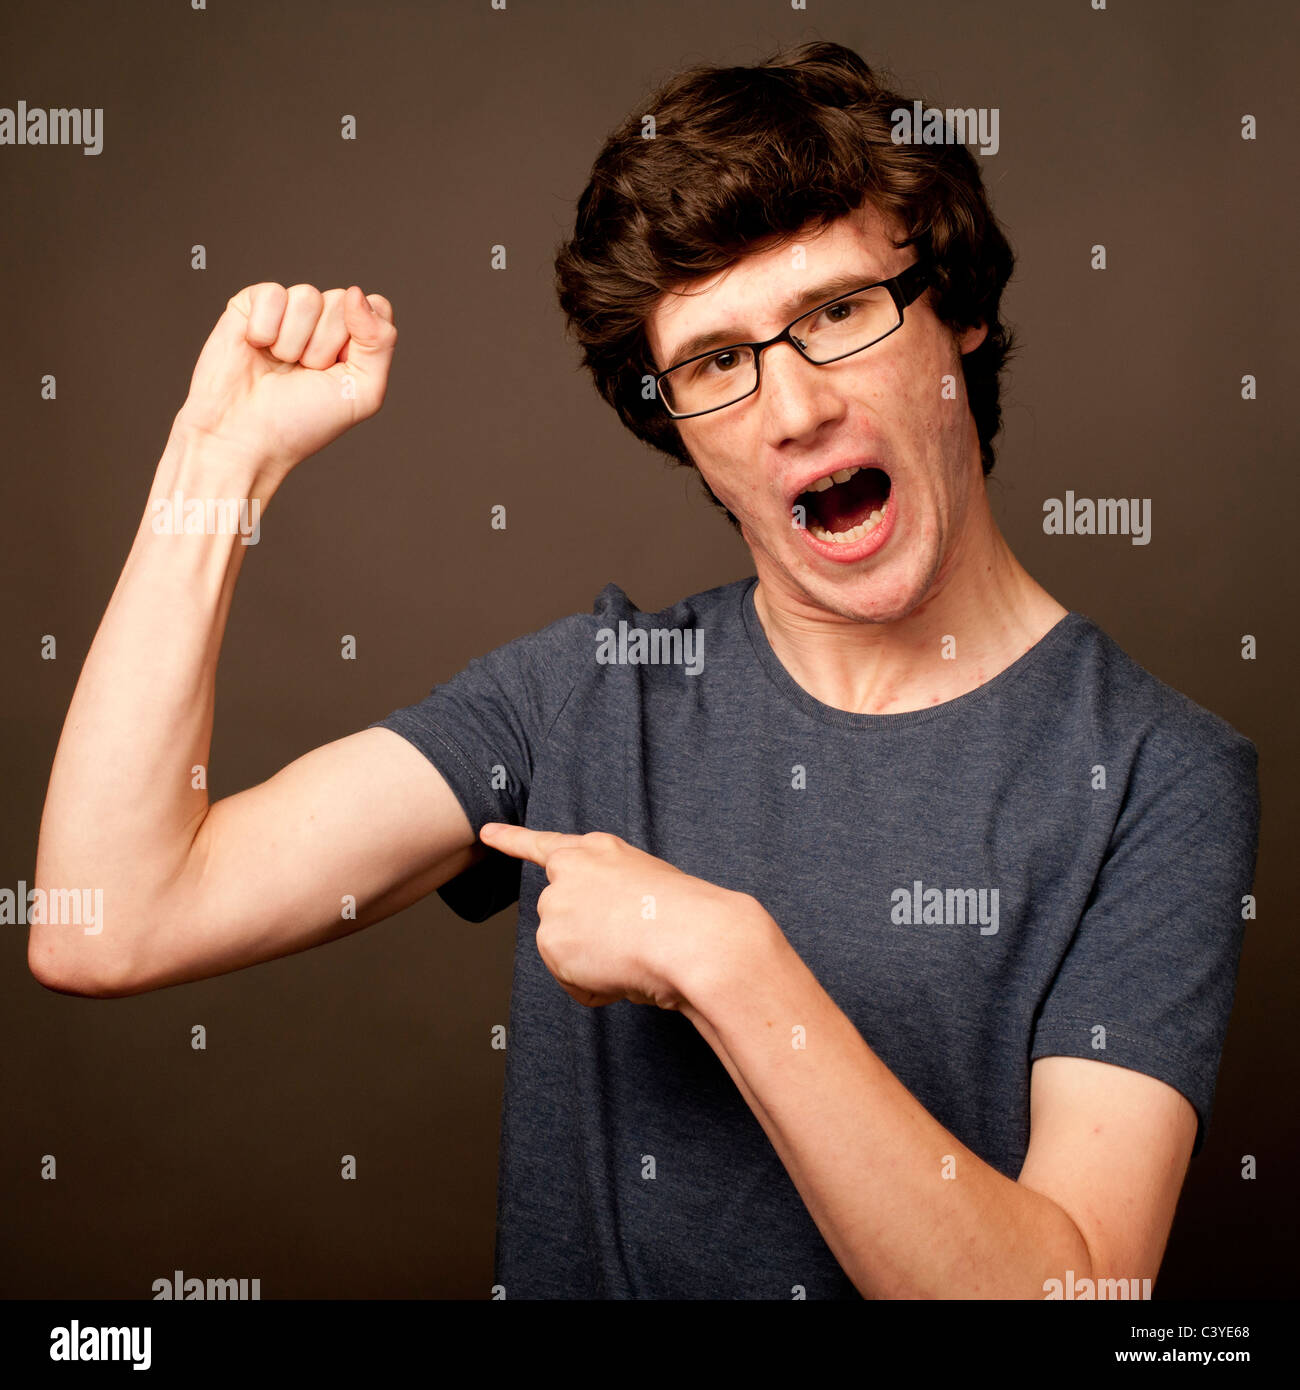 a weak feeble geek nerd young man with thin arms wearing glasses flexing his muscles - Stock Image